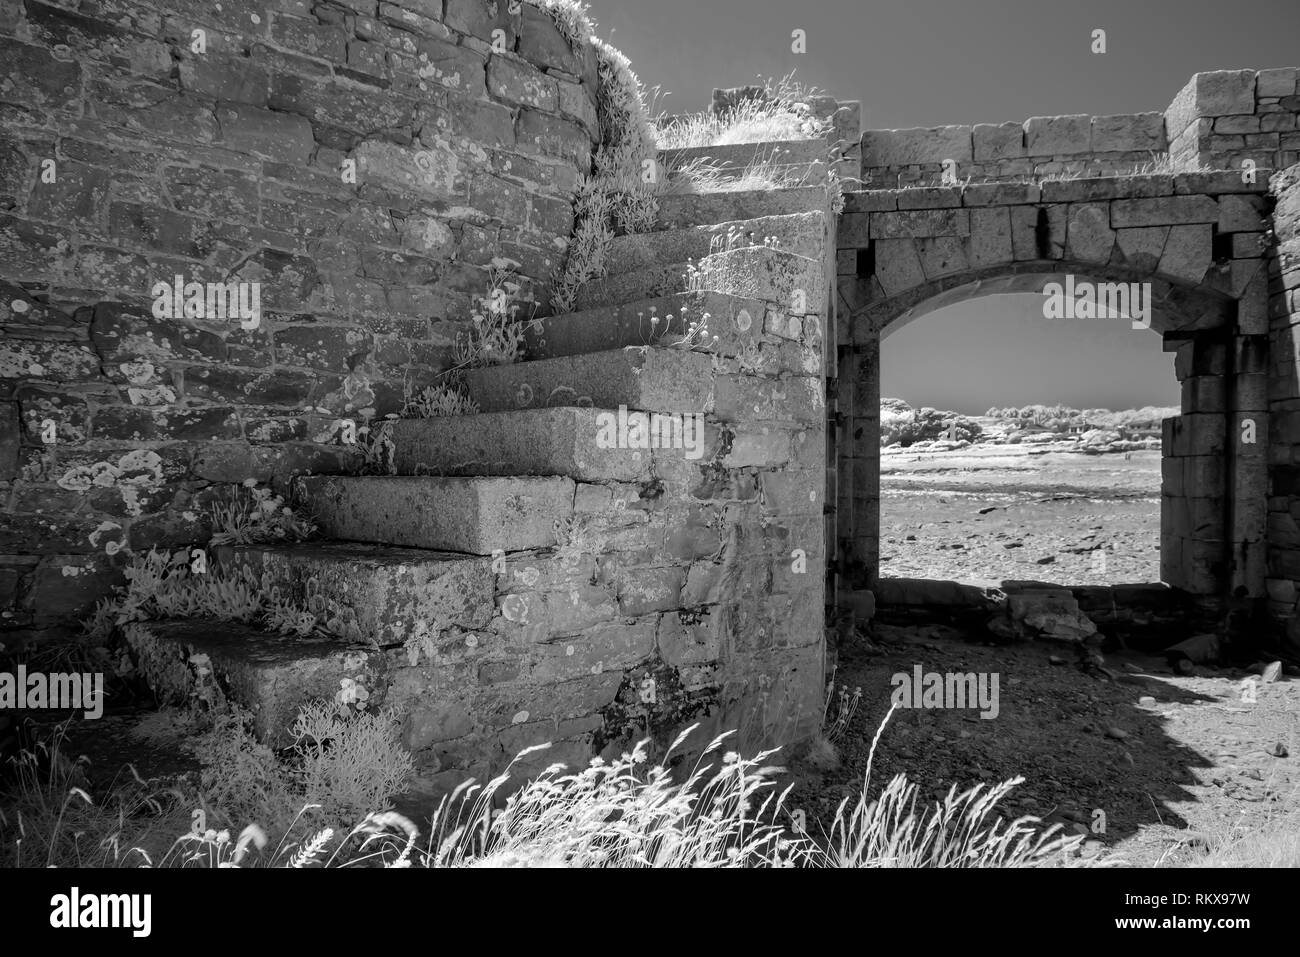 An Infrared monochrome image of the interior of Fort Houmet Herbe on Alderney, Channel Islands. - Stock Image